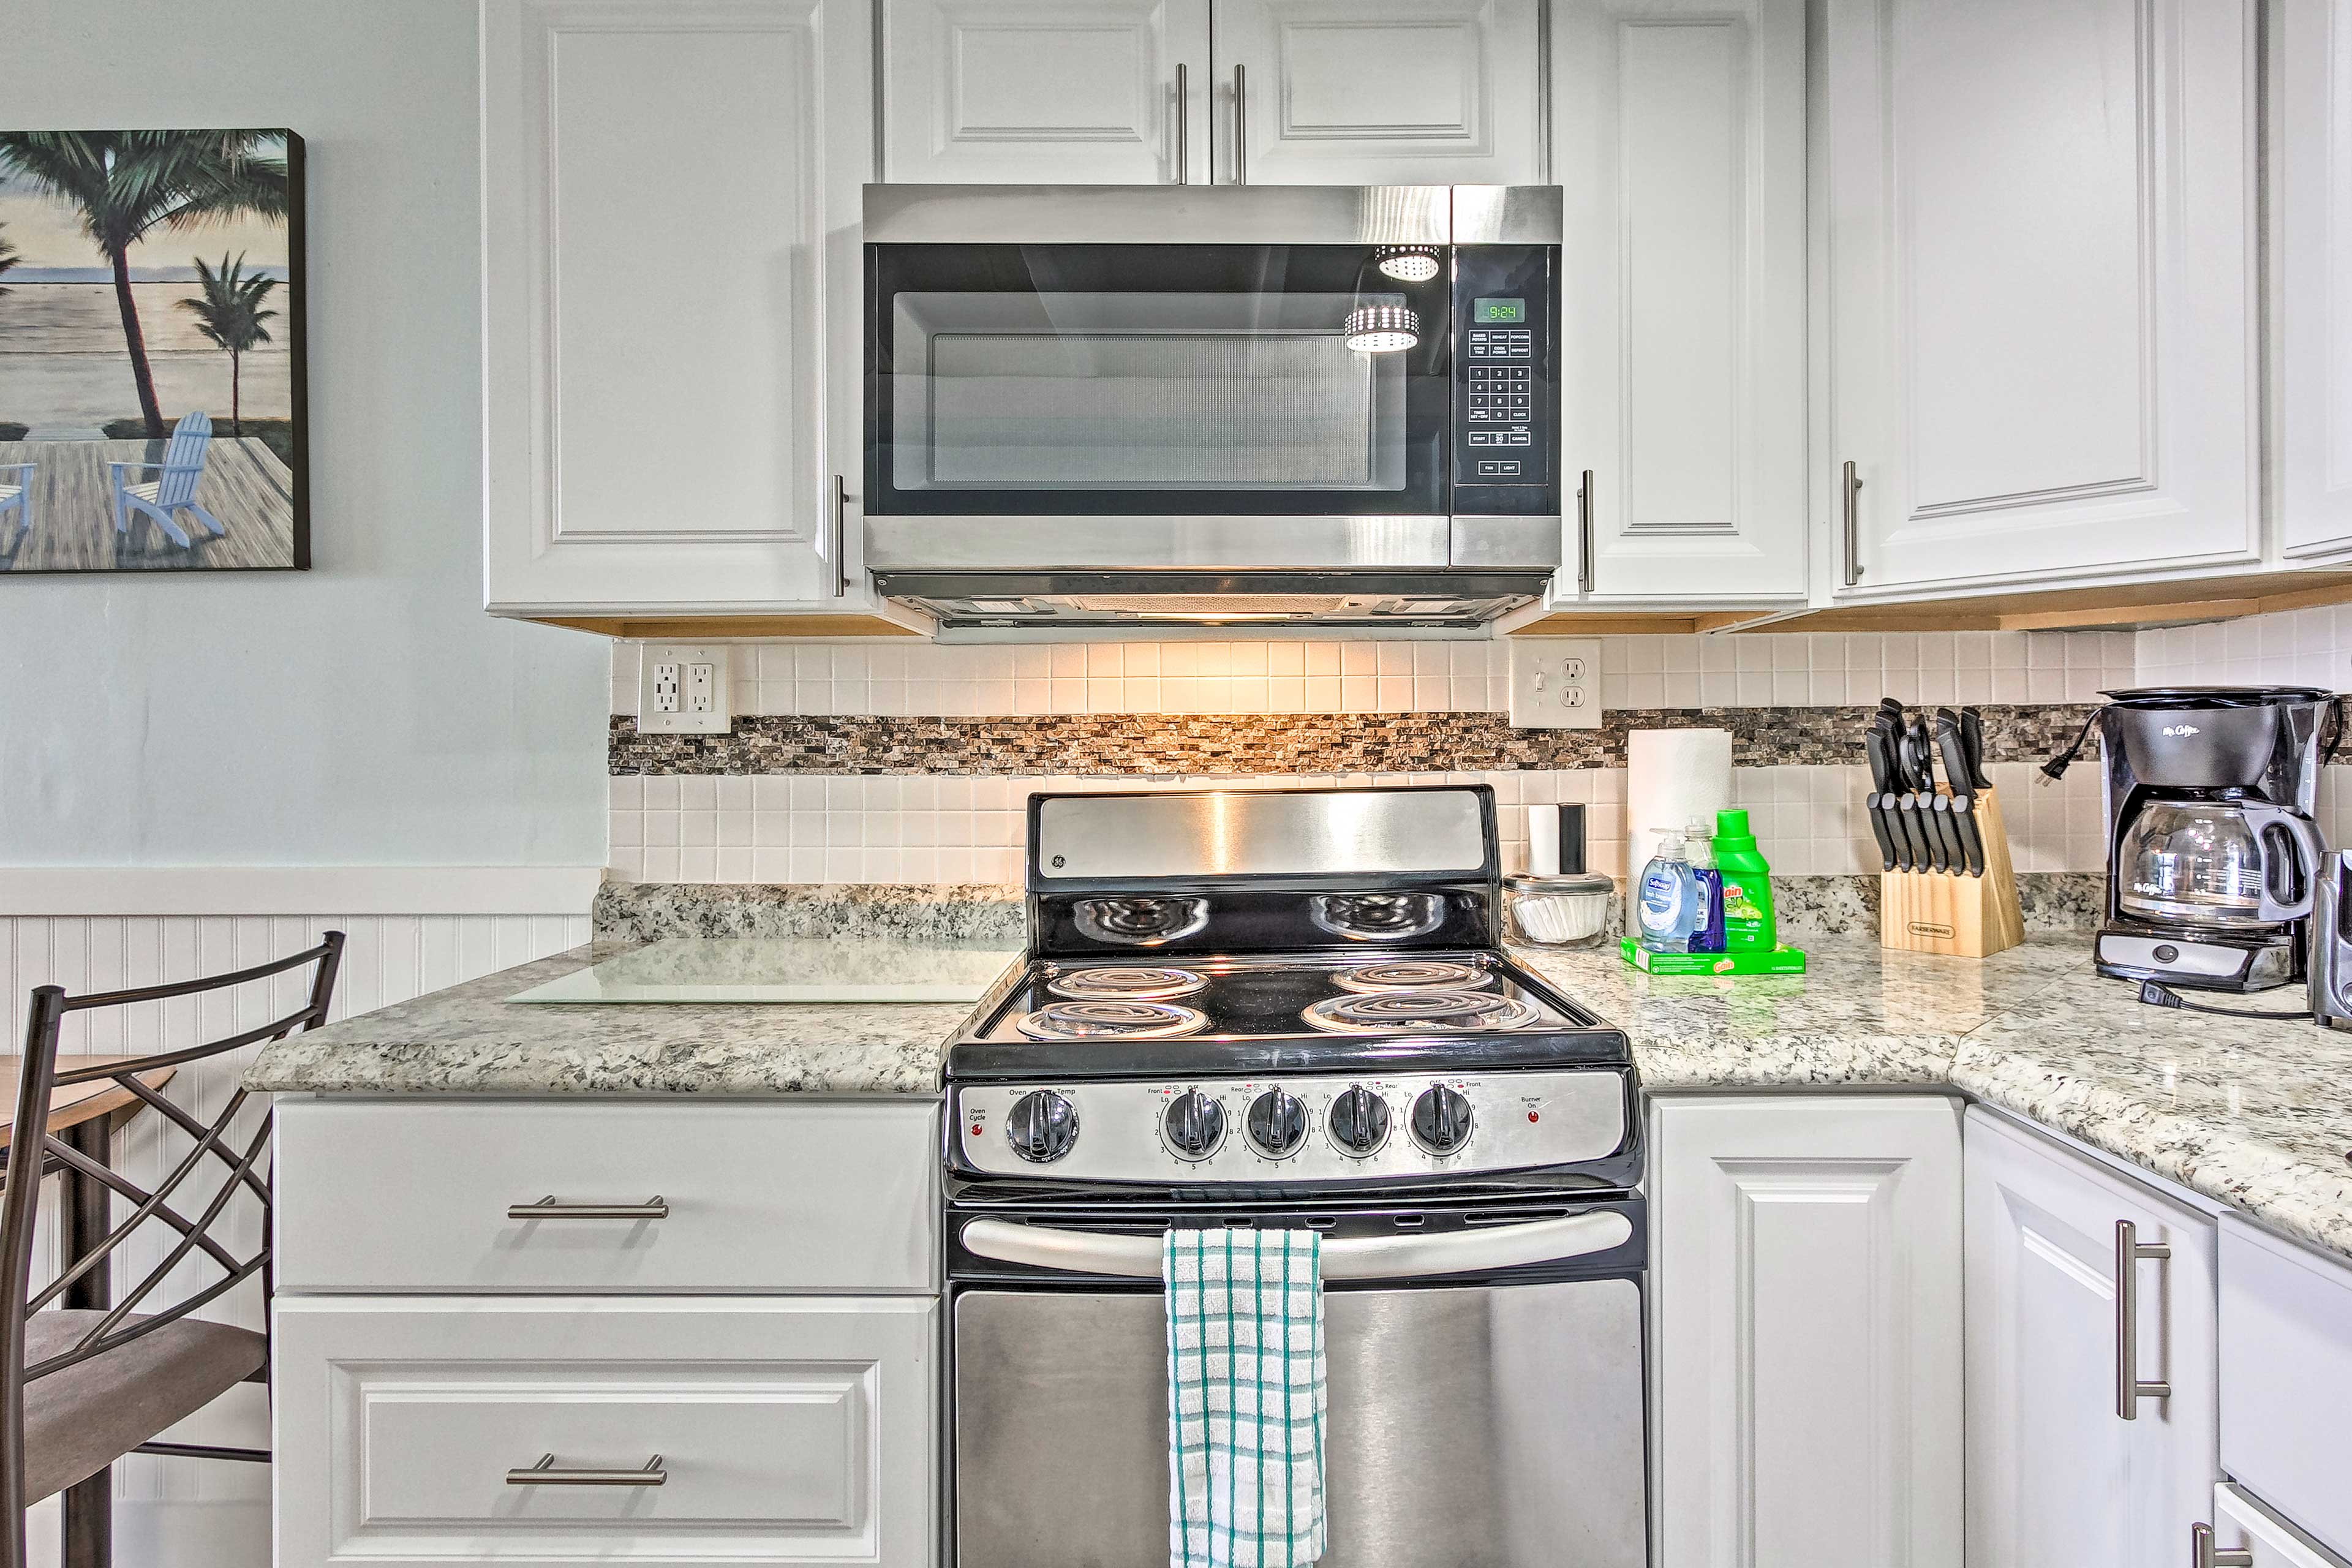 The modern kitchen features stainless steel appliances.